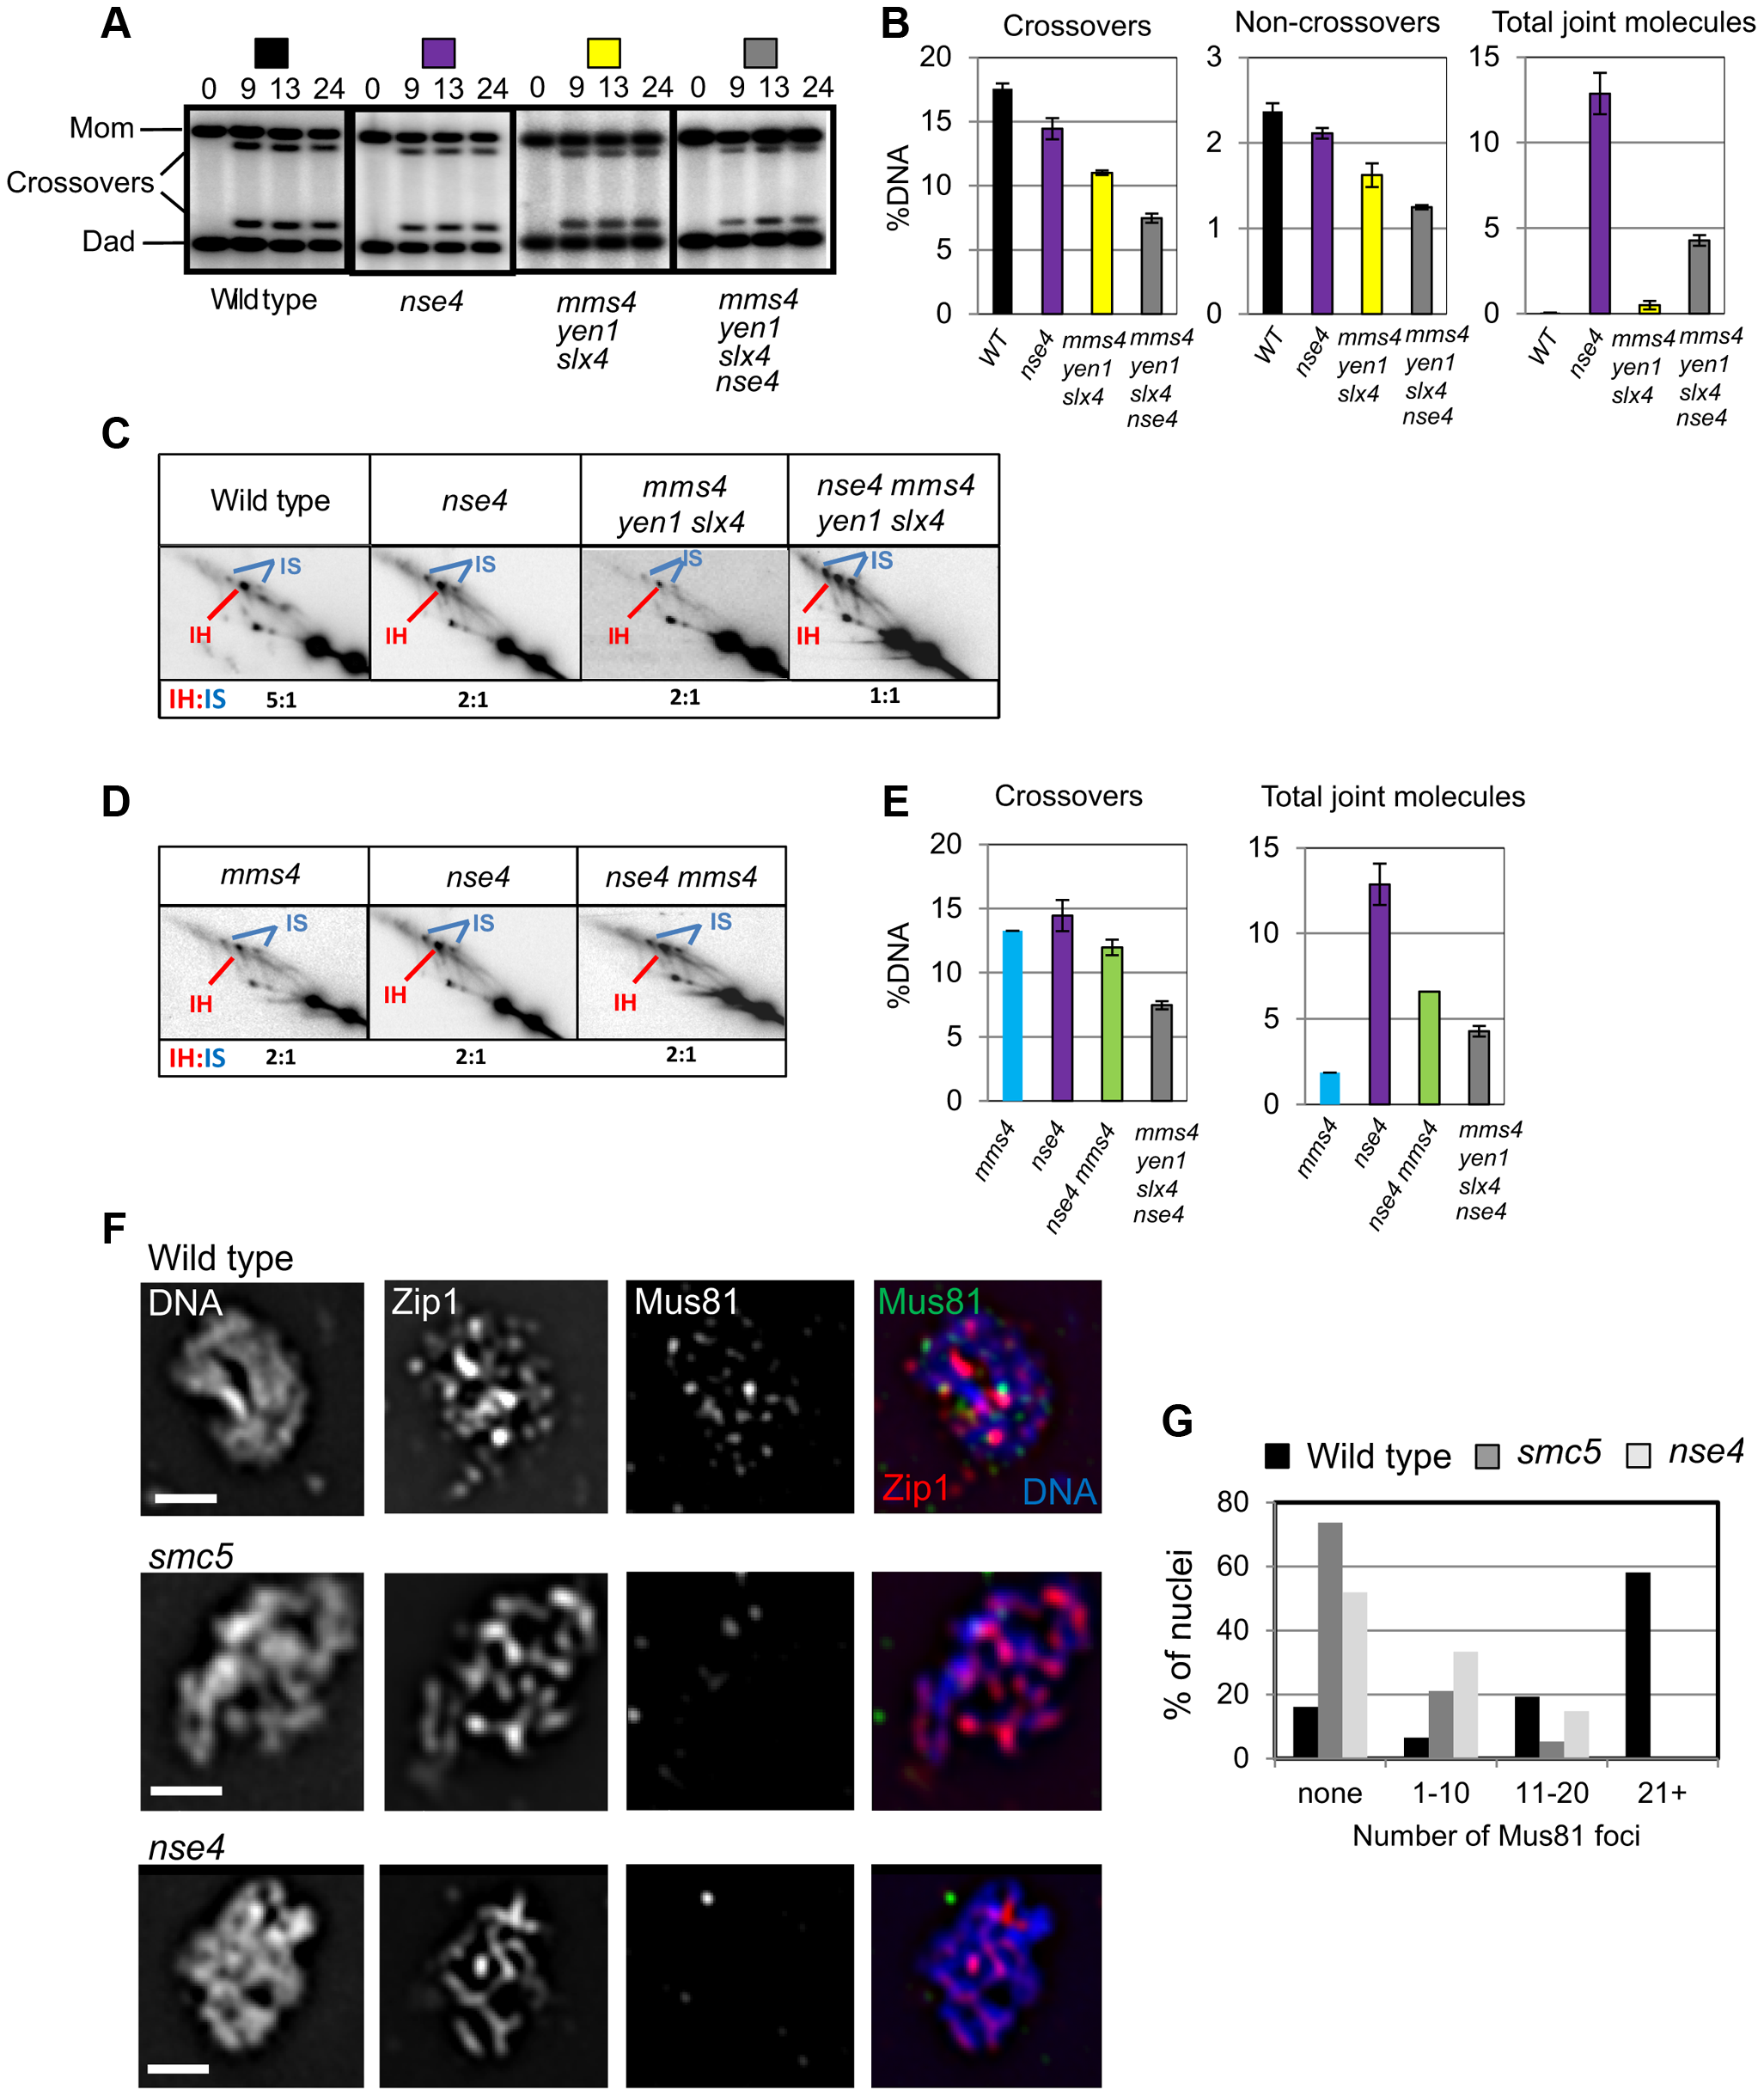 Smc5/6 regulates joint molecule resolution by Mus81-Mms4.